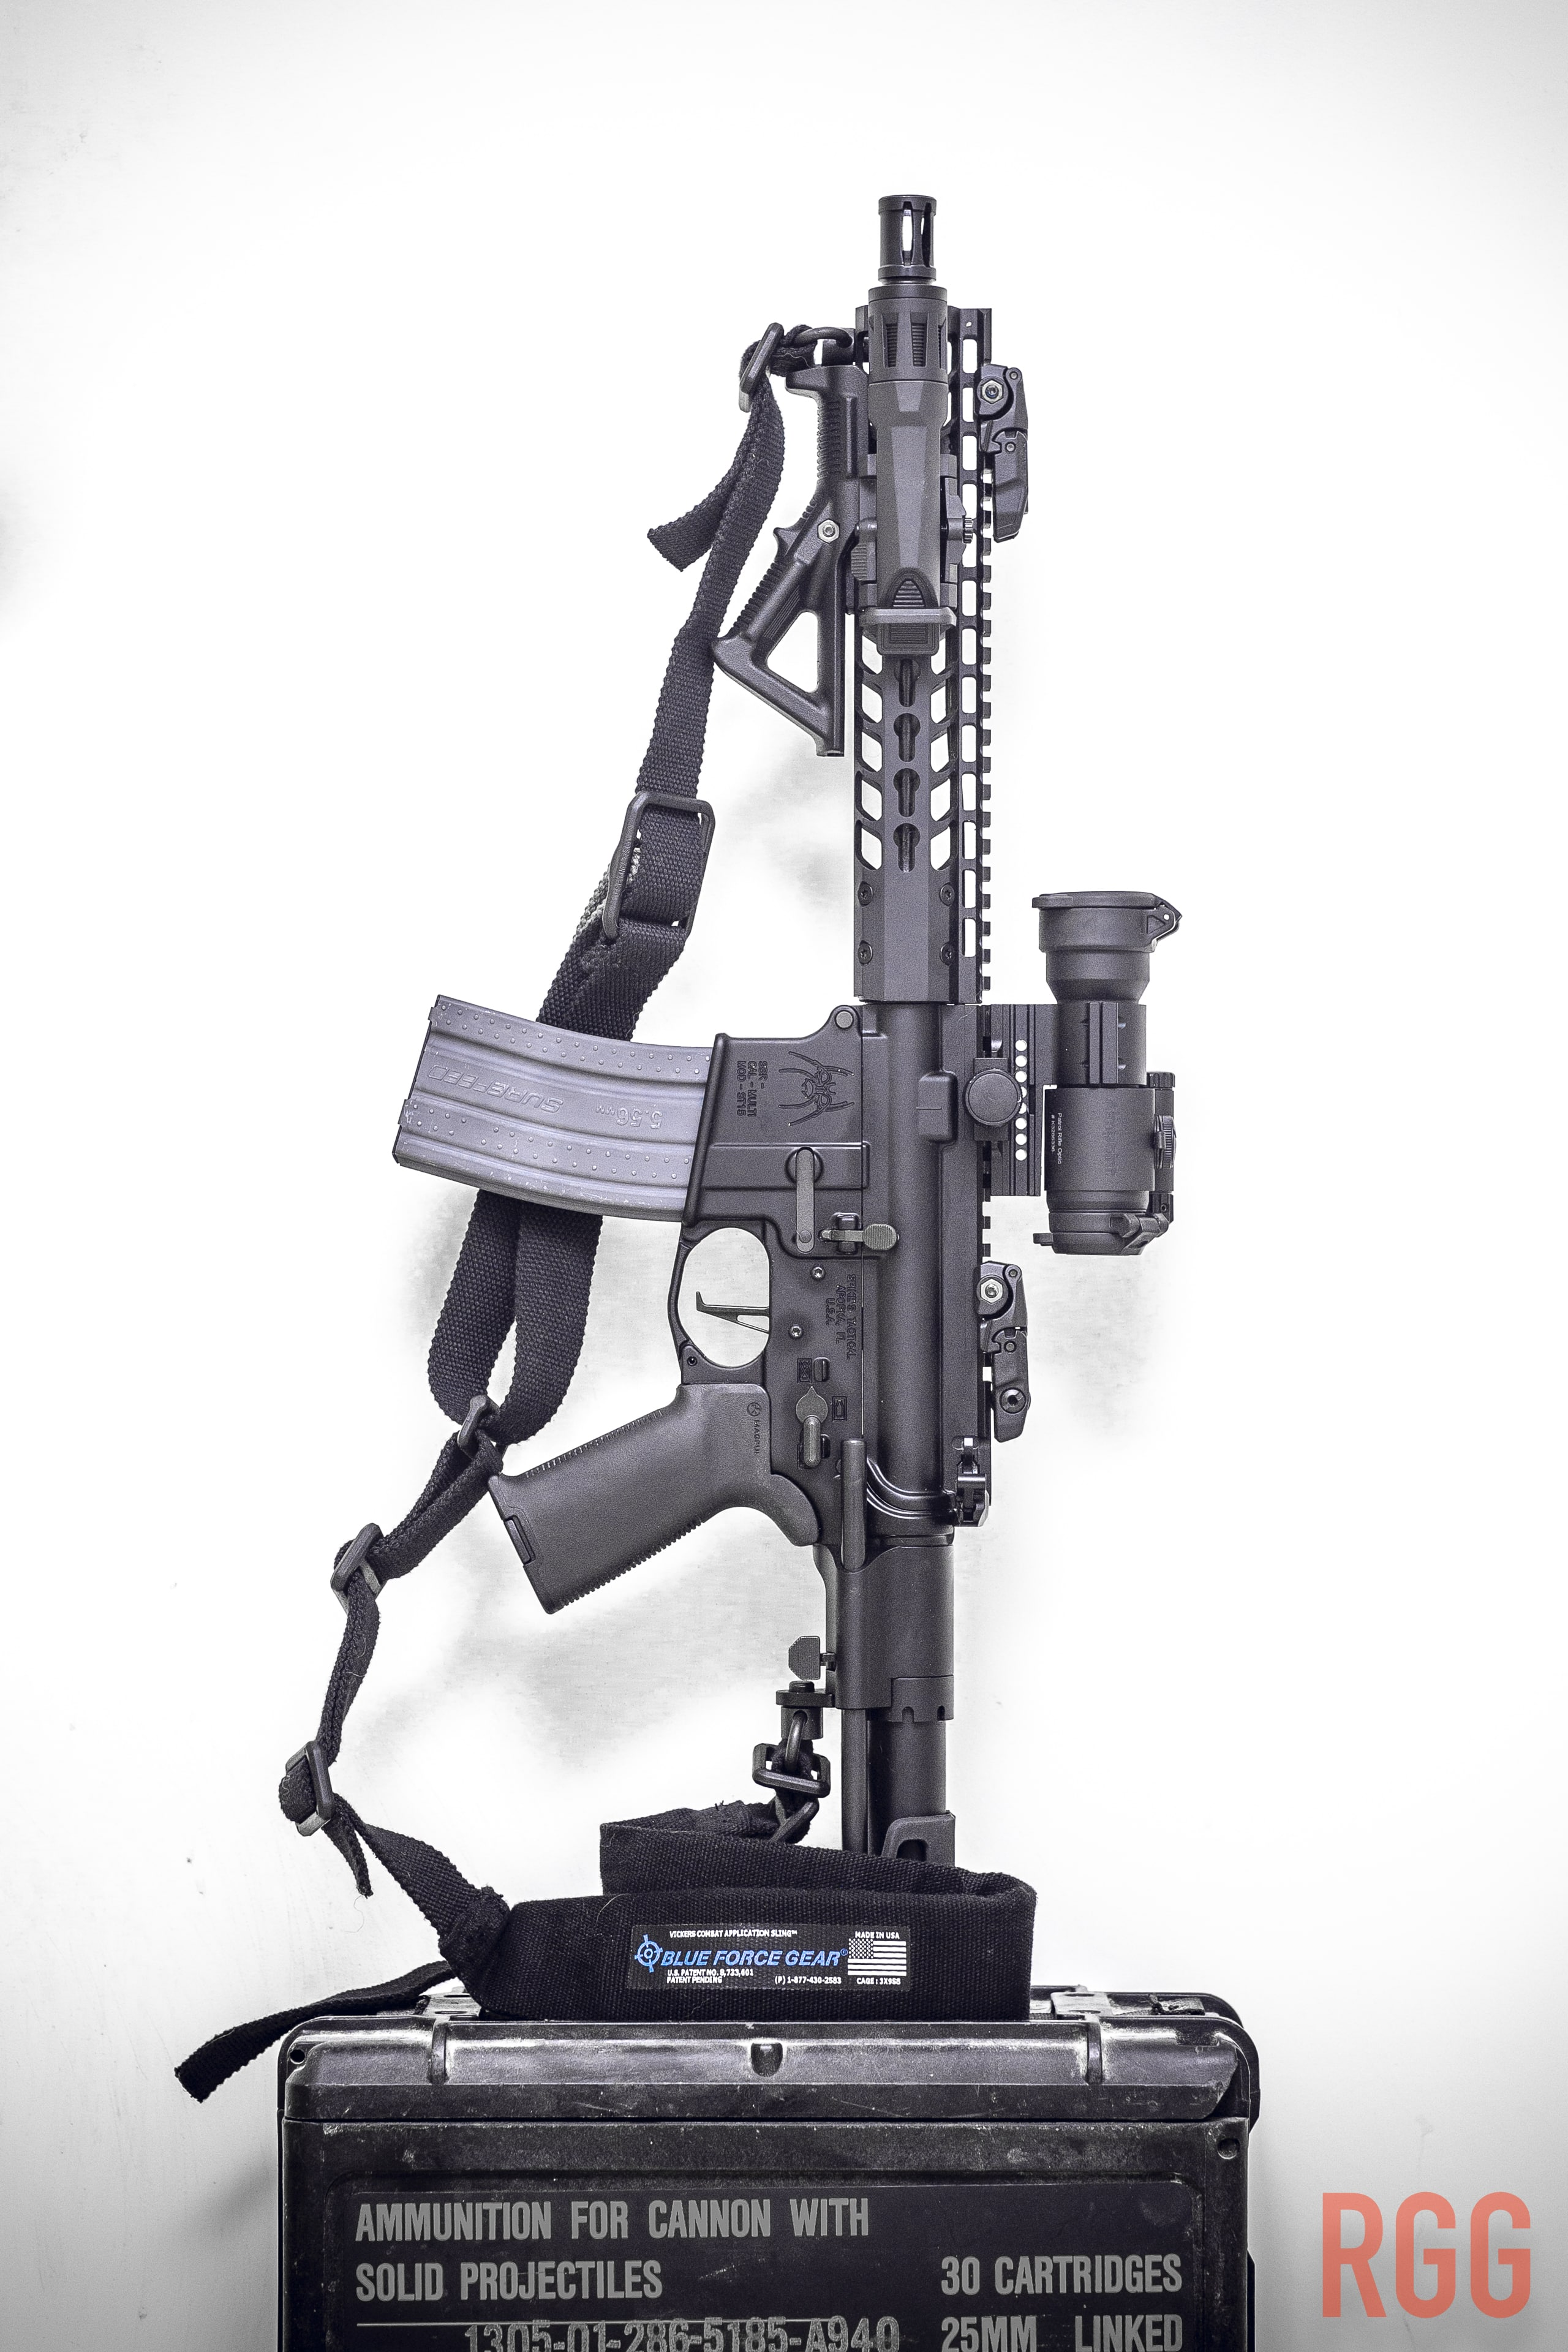 An AR-15 pistol is one of the best tools for personal defensive use.